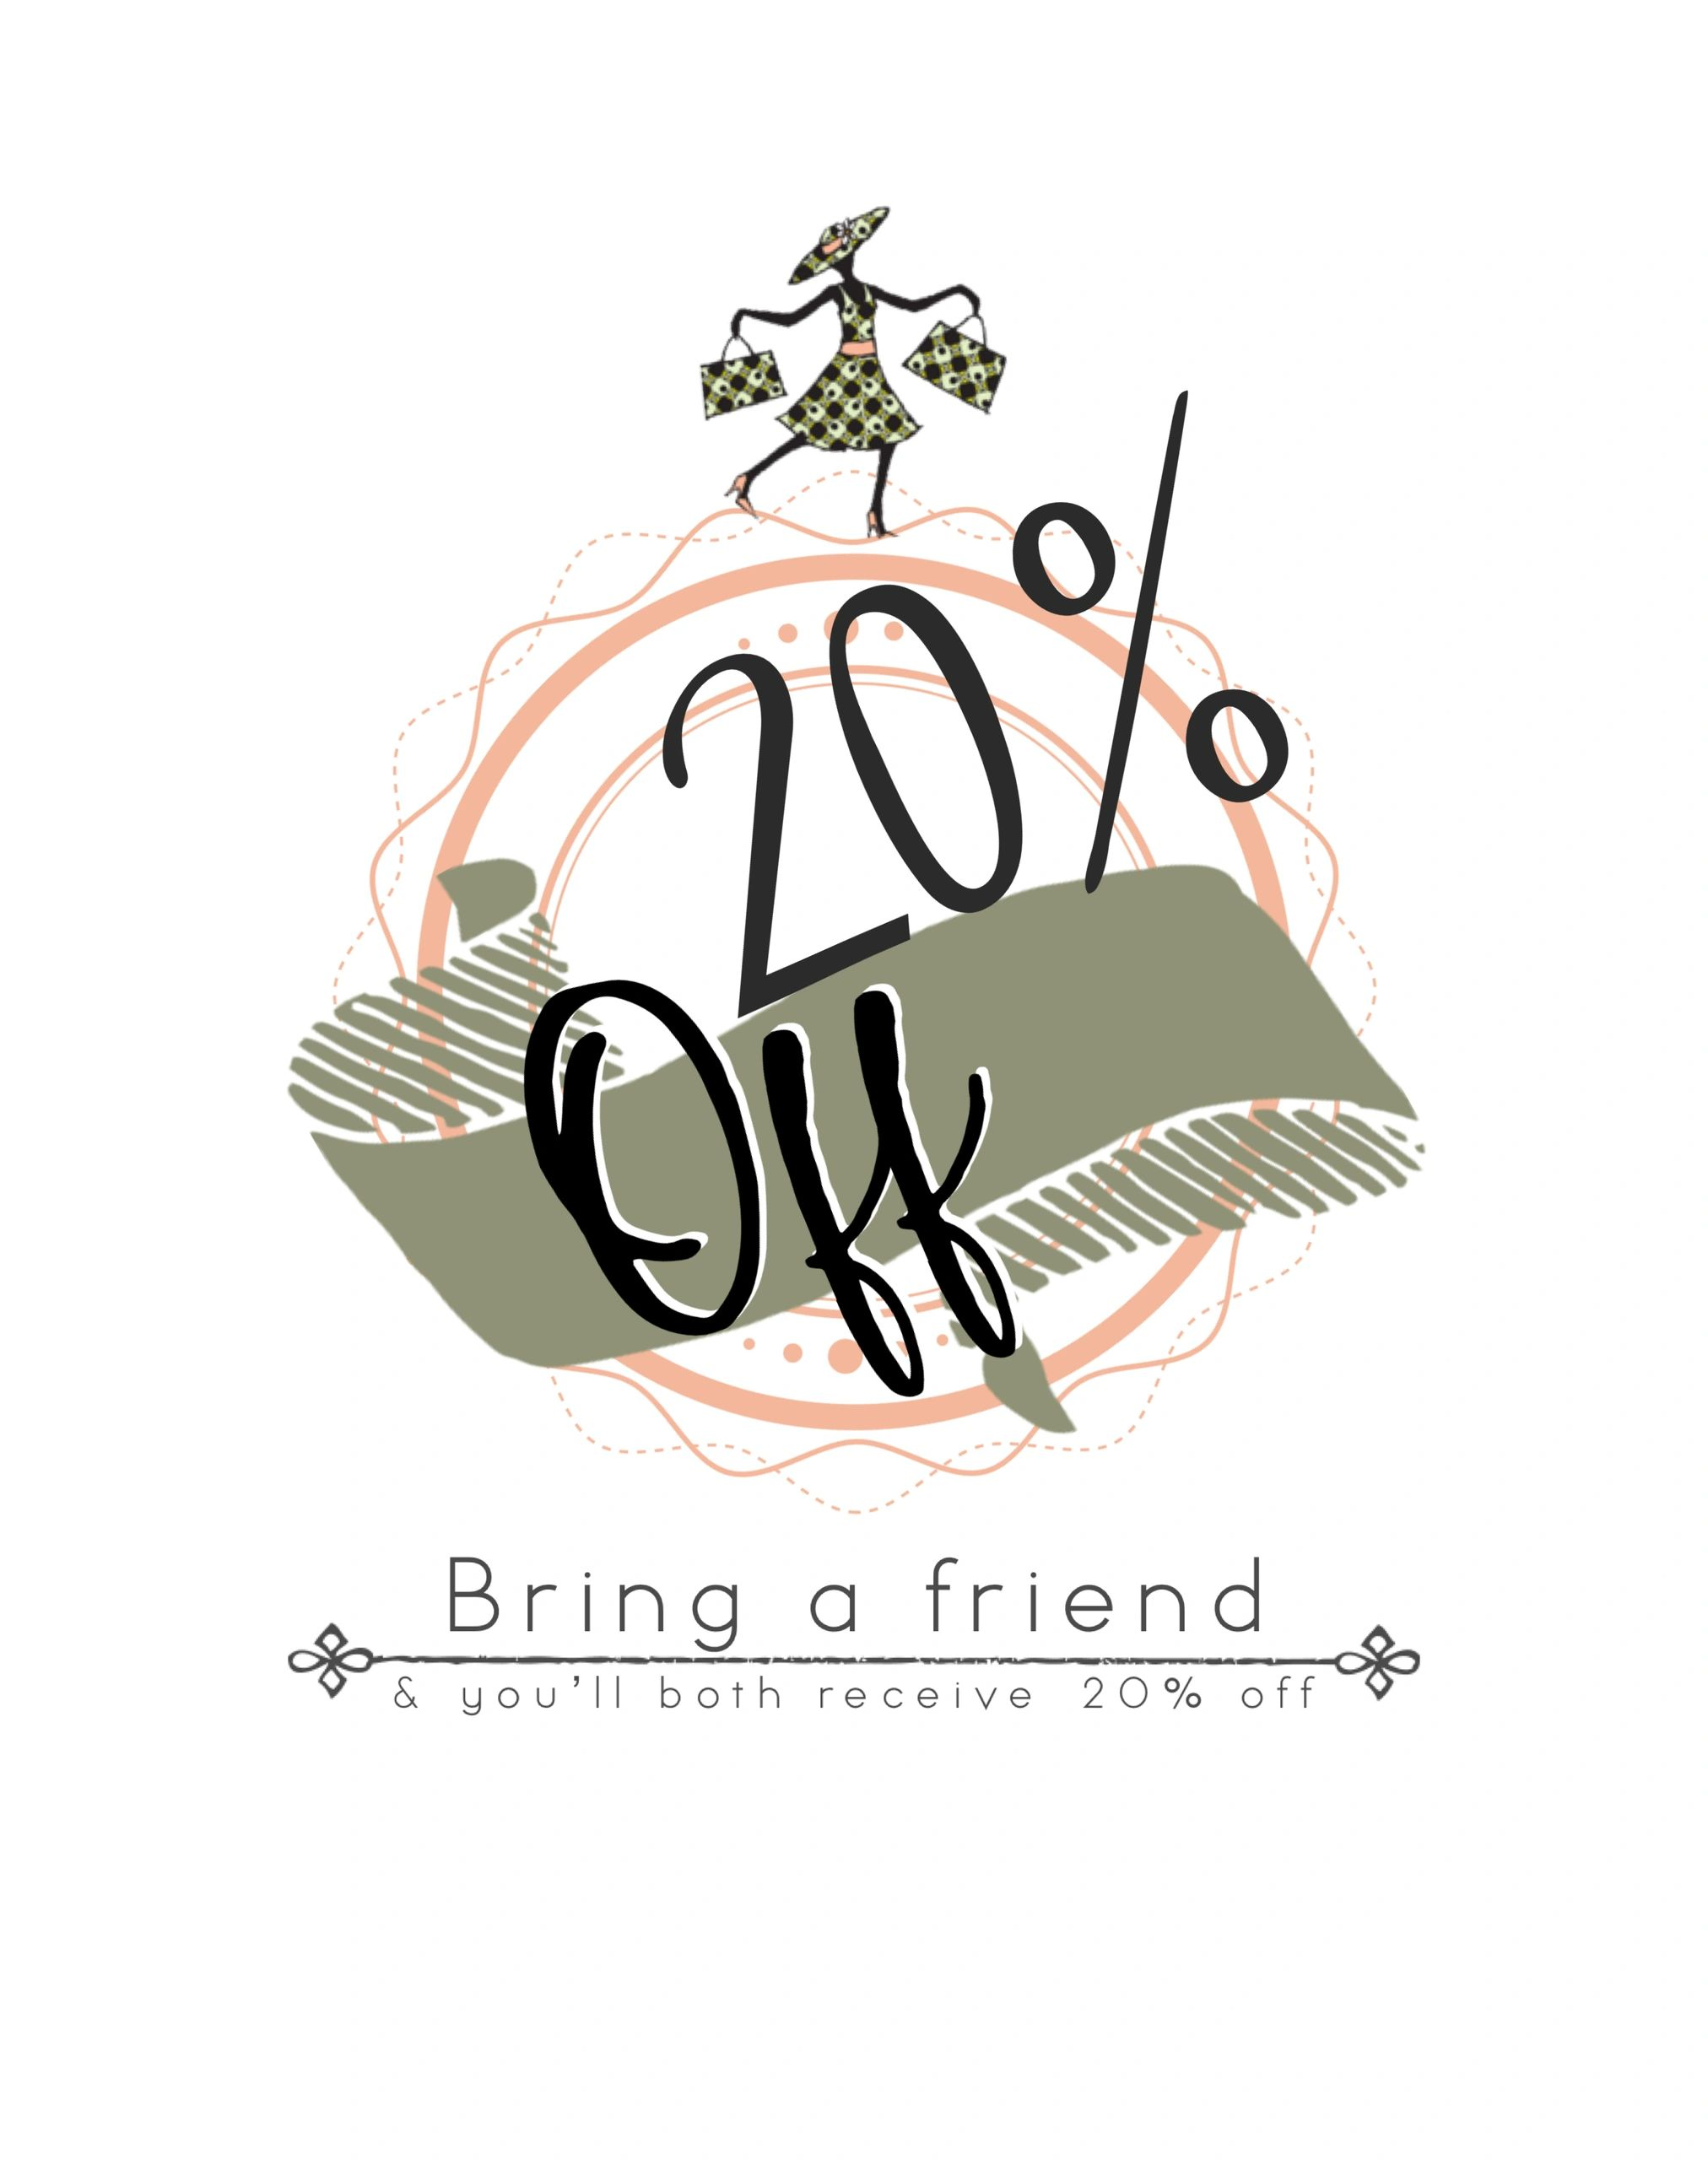 20 percent off at olivia's consignment shop